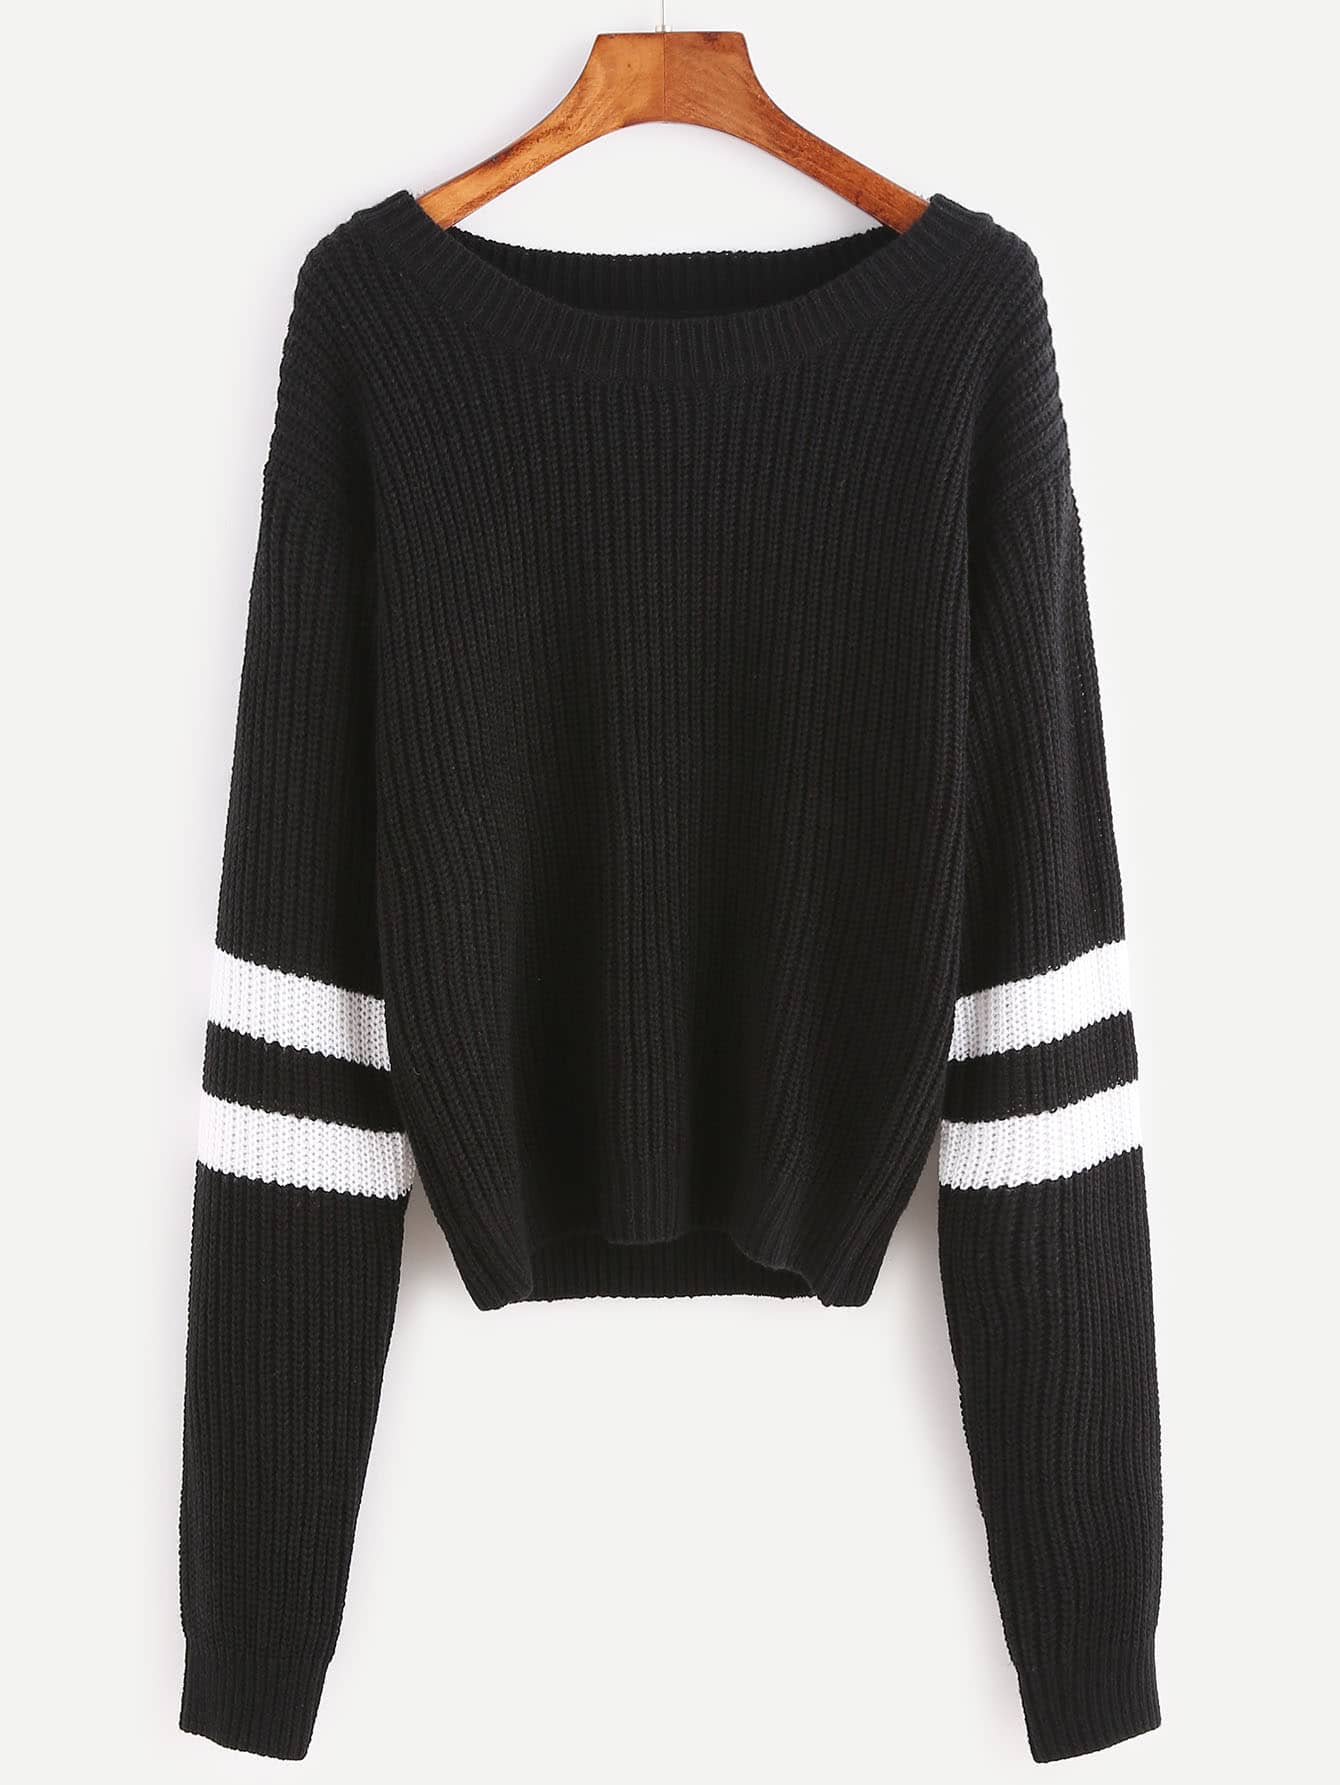 Black Ribbed Knit Striped Sleeve Sweater sweater161020454